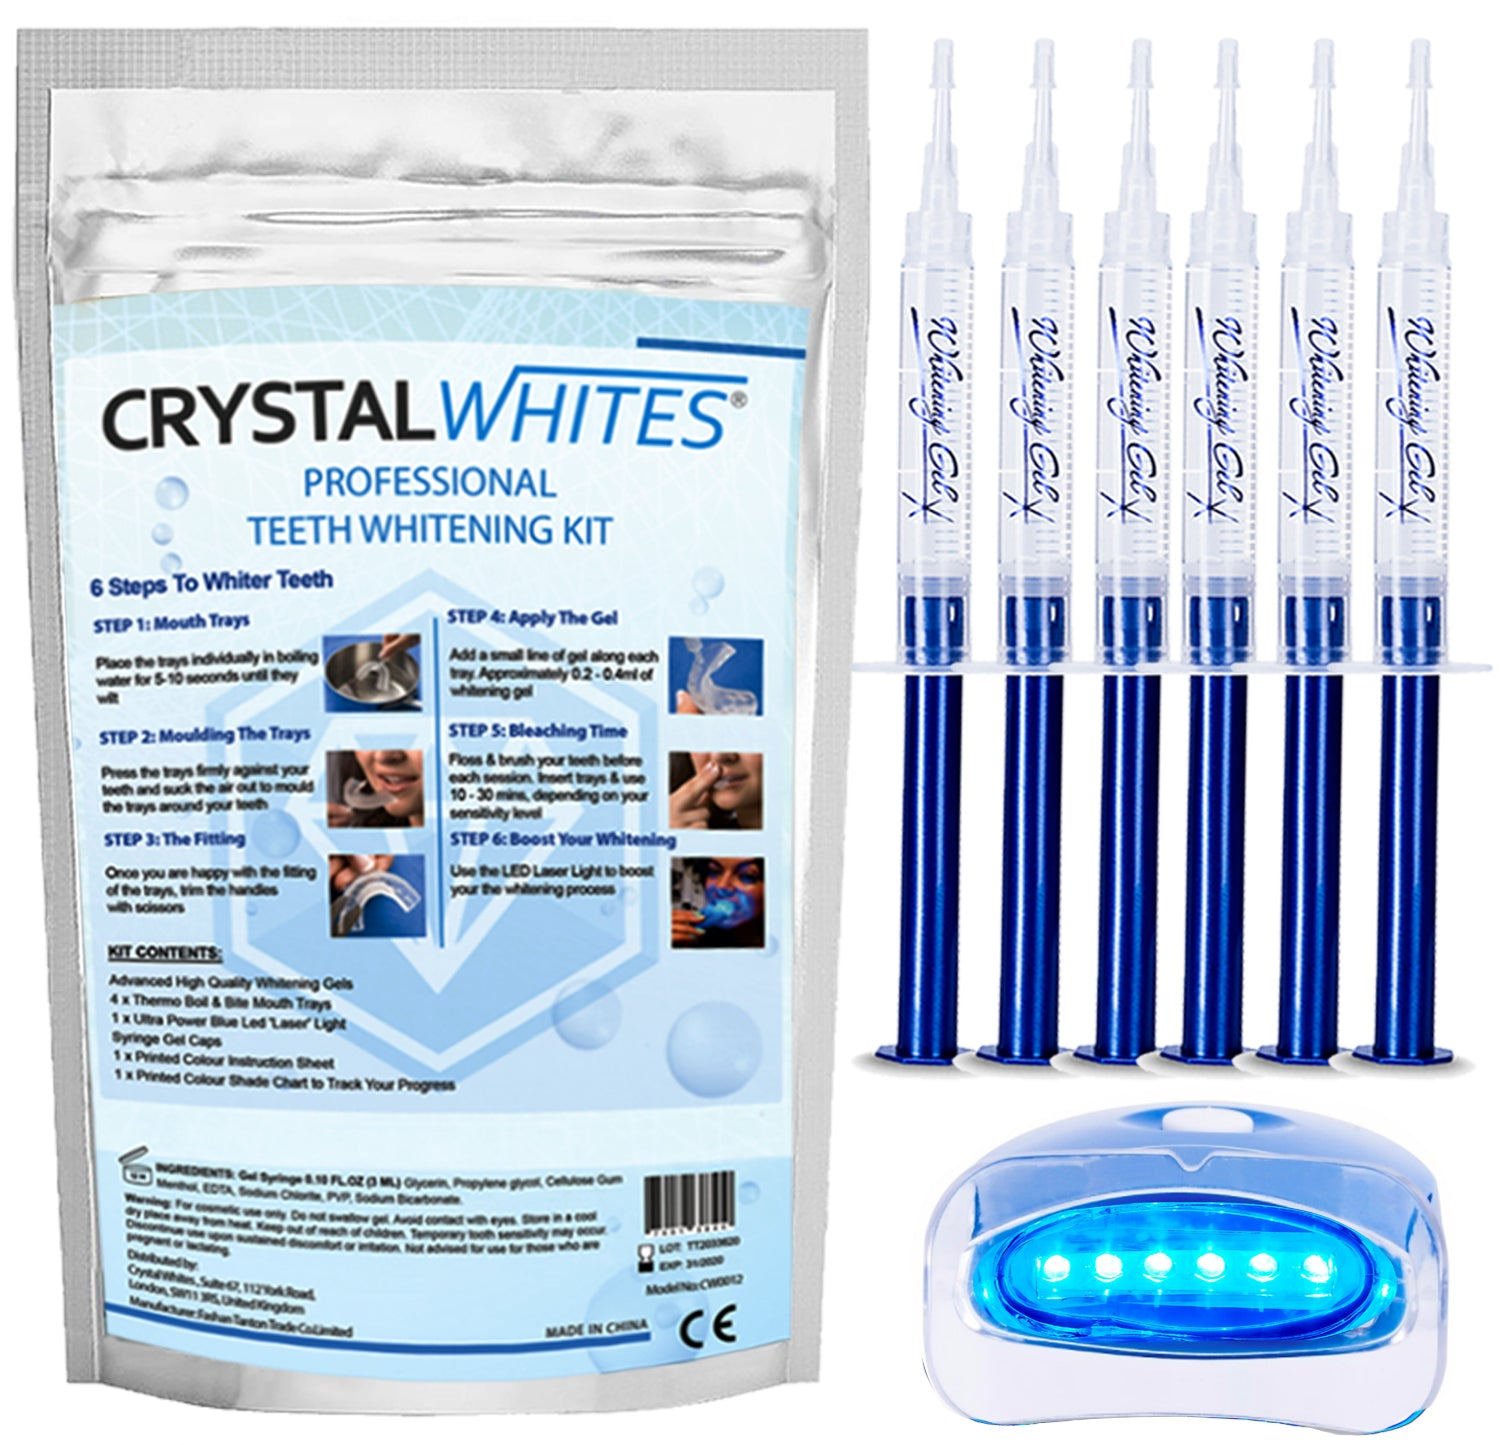 ADVANCED TEETH WHITENING KIT WITH LED LASER LIGHT